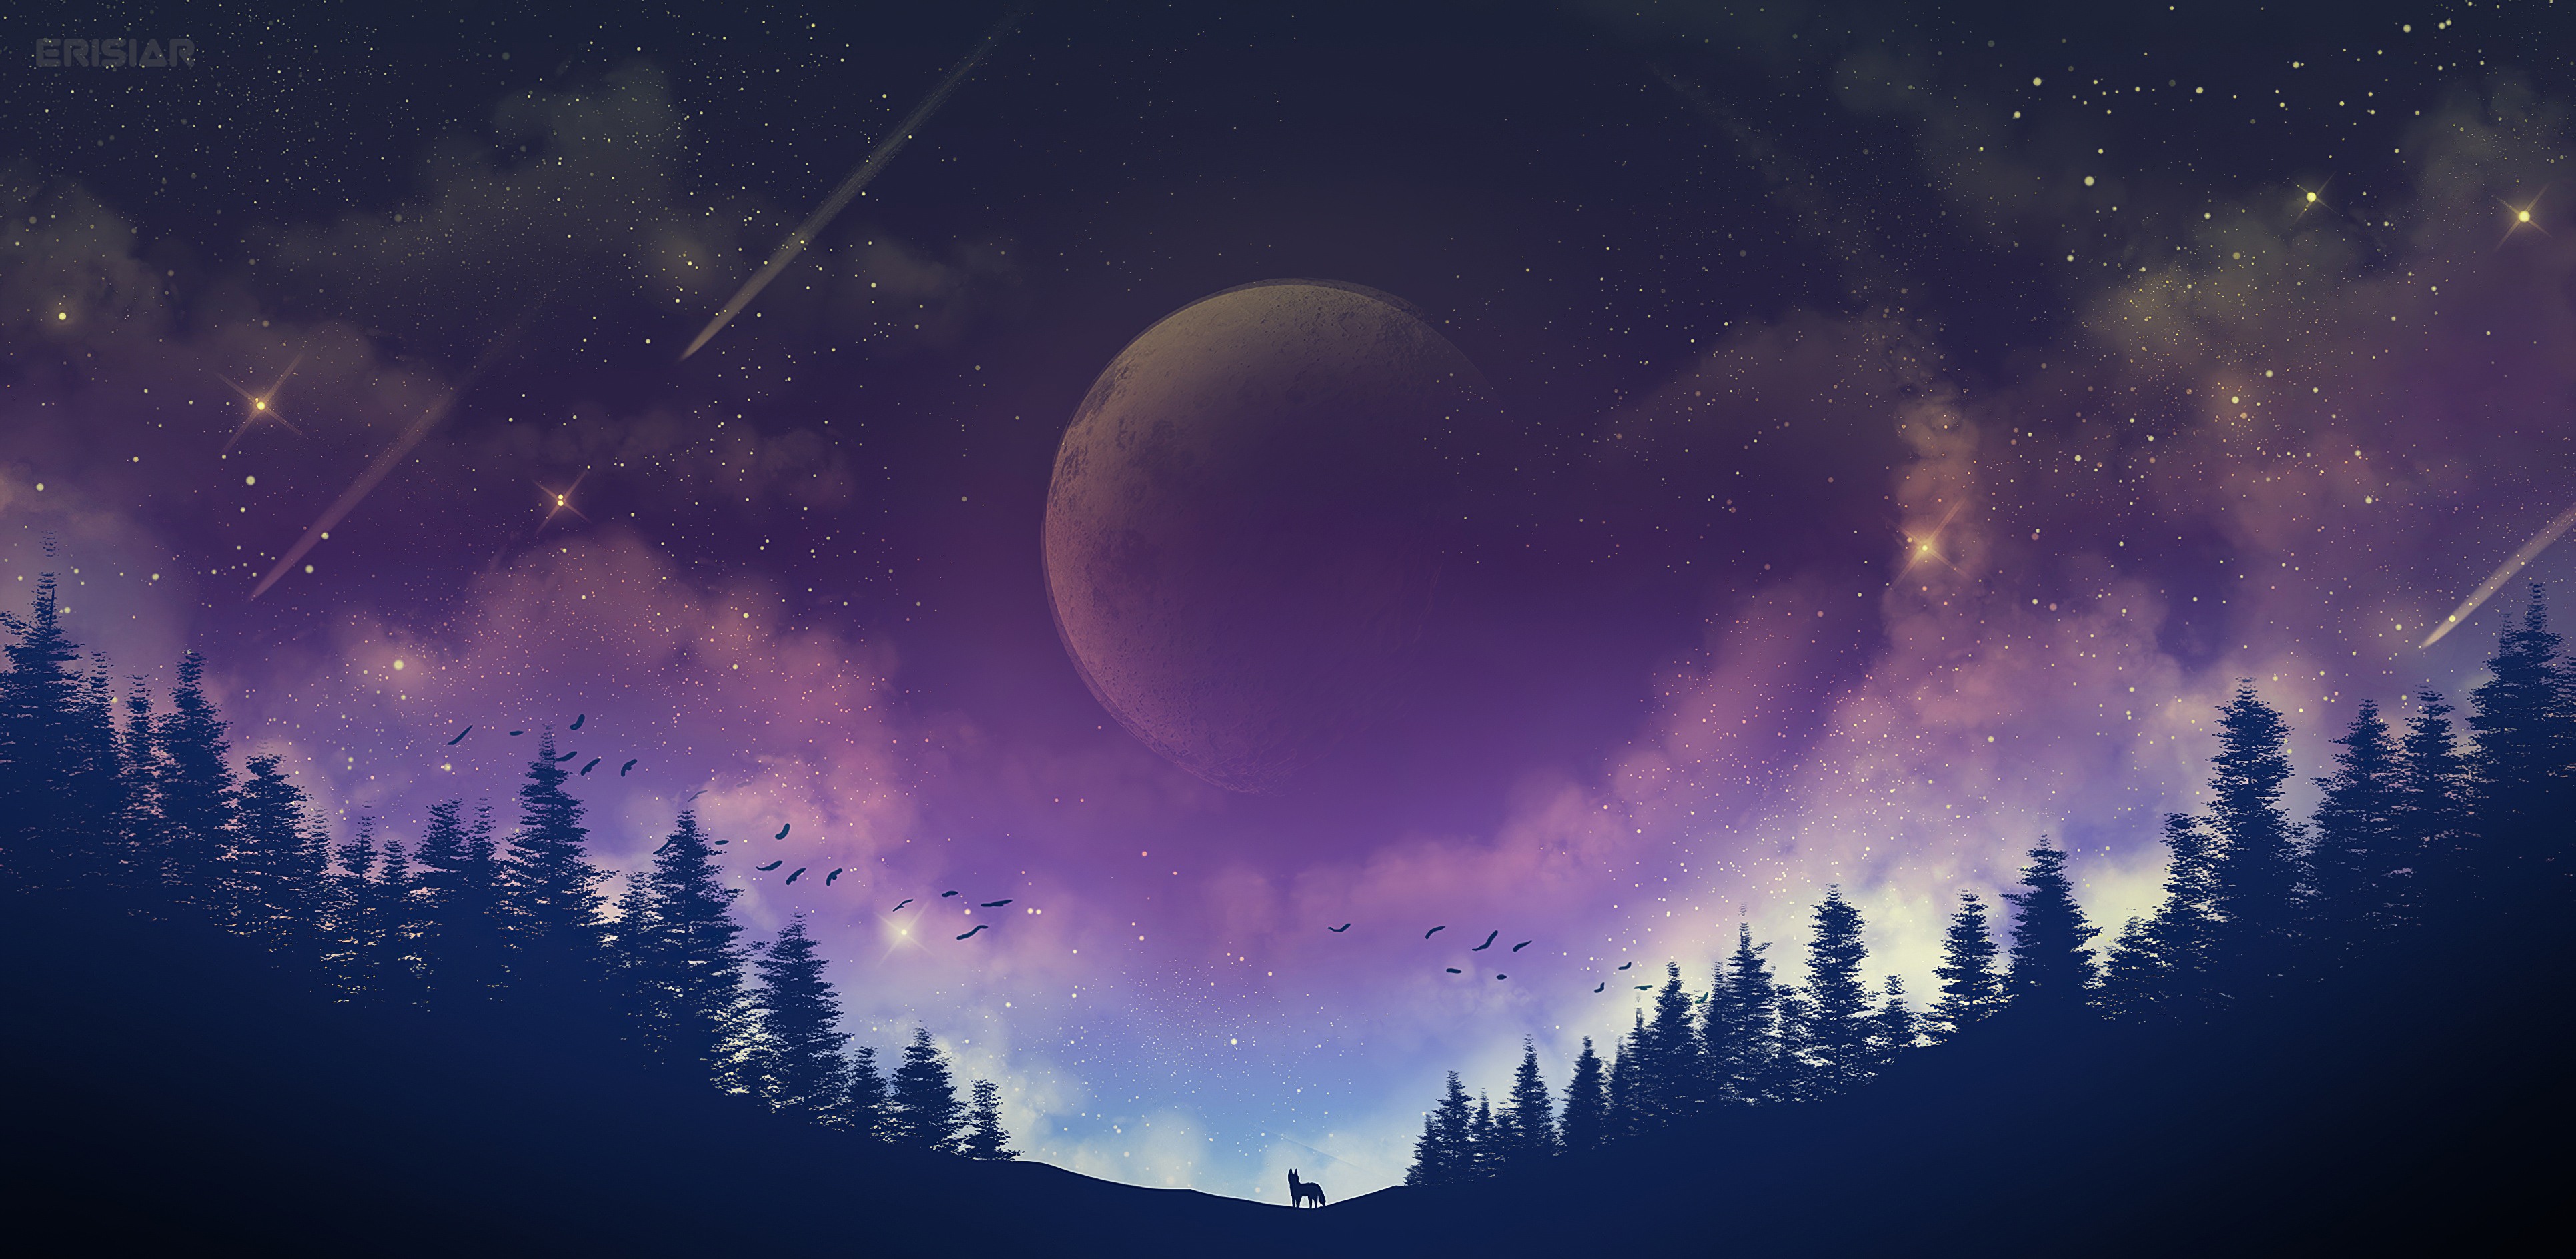 1920x1080 Moon Fox Galaxy 4k Laptop Full Hd 1080p Hd 4k Wallpapers Images Backgrounds Photos And Pictures